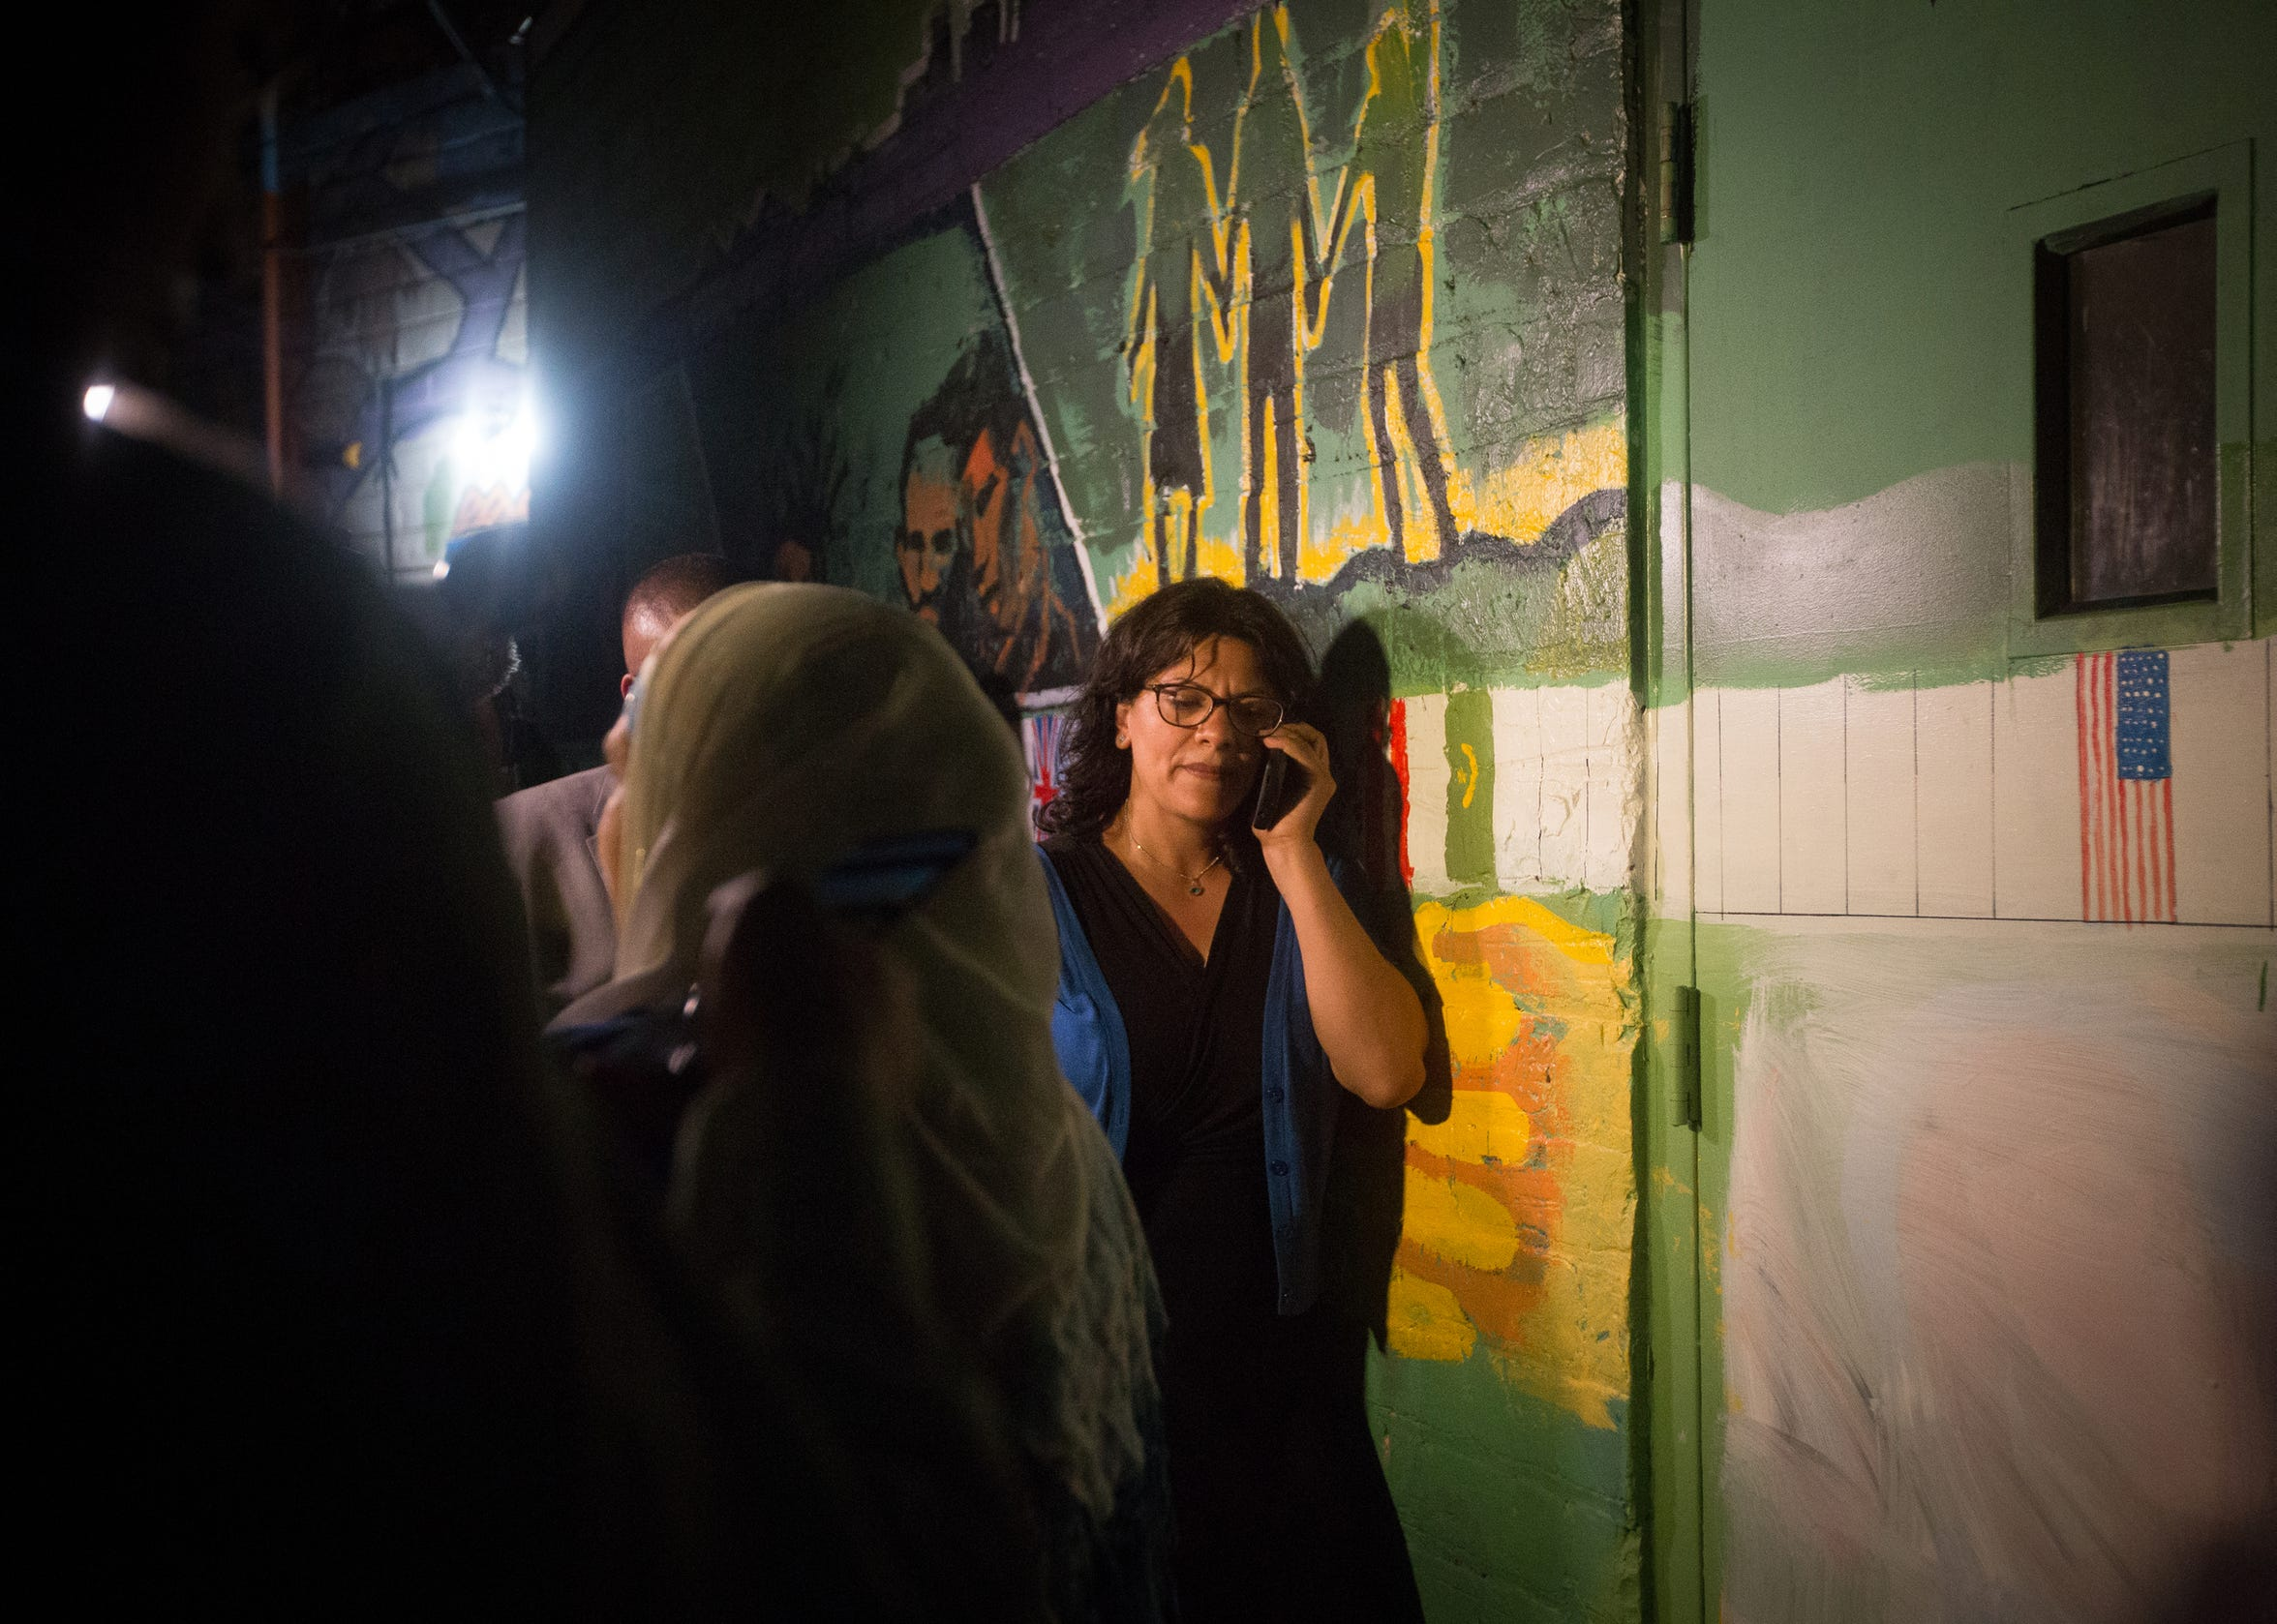 Rashida Tlaib attempts to find out the status of absentee ballots after the Associated Press called Tlaib's race in her favor at Tlaib's election night party in northwest Detroit on Aug. 7, 2018.